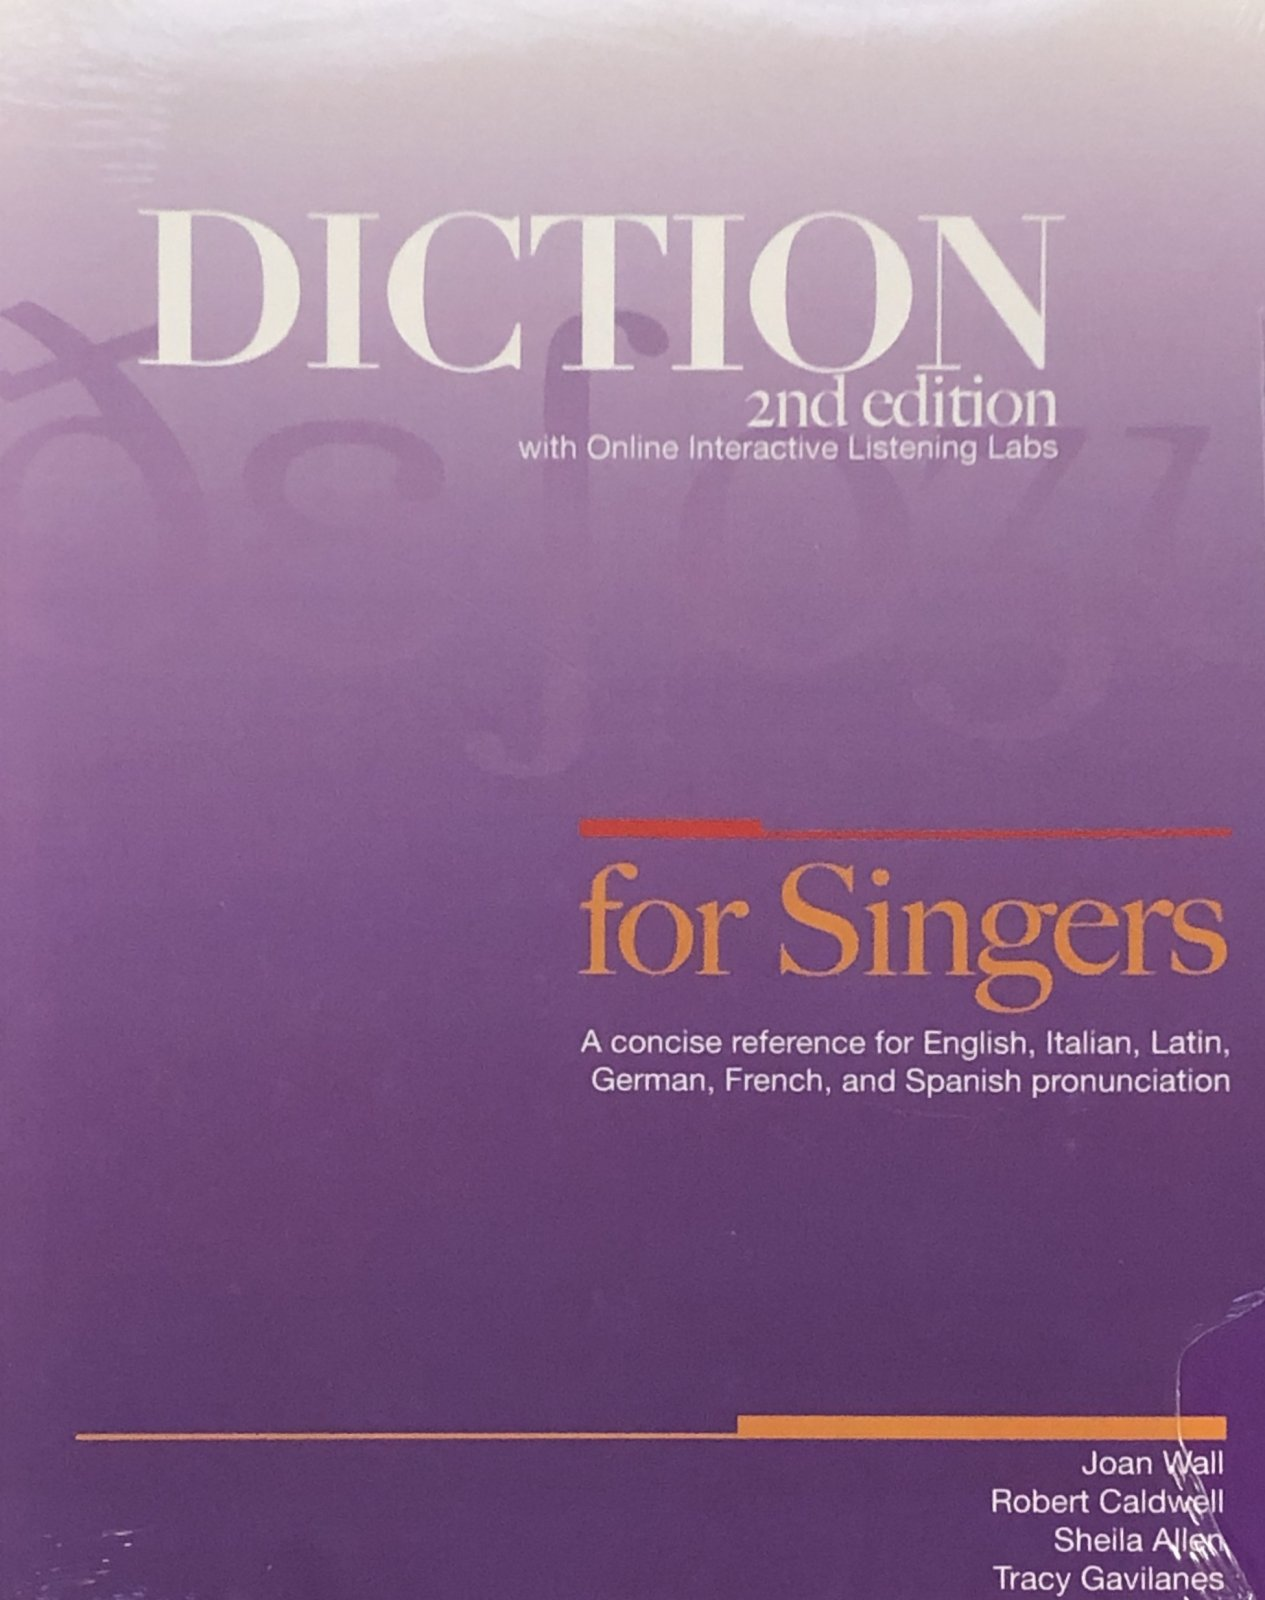 Diction for Singers   A concise reference for English, Italian, Latin, German, French, and Spanish pronunciation   2nd Edition   Joan Wall, Robert Caldwell, Sheila Allen, Tracy Gavilanes